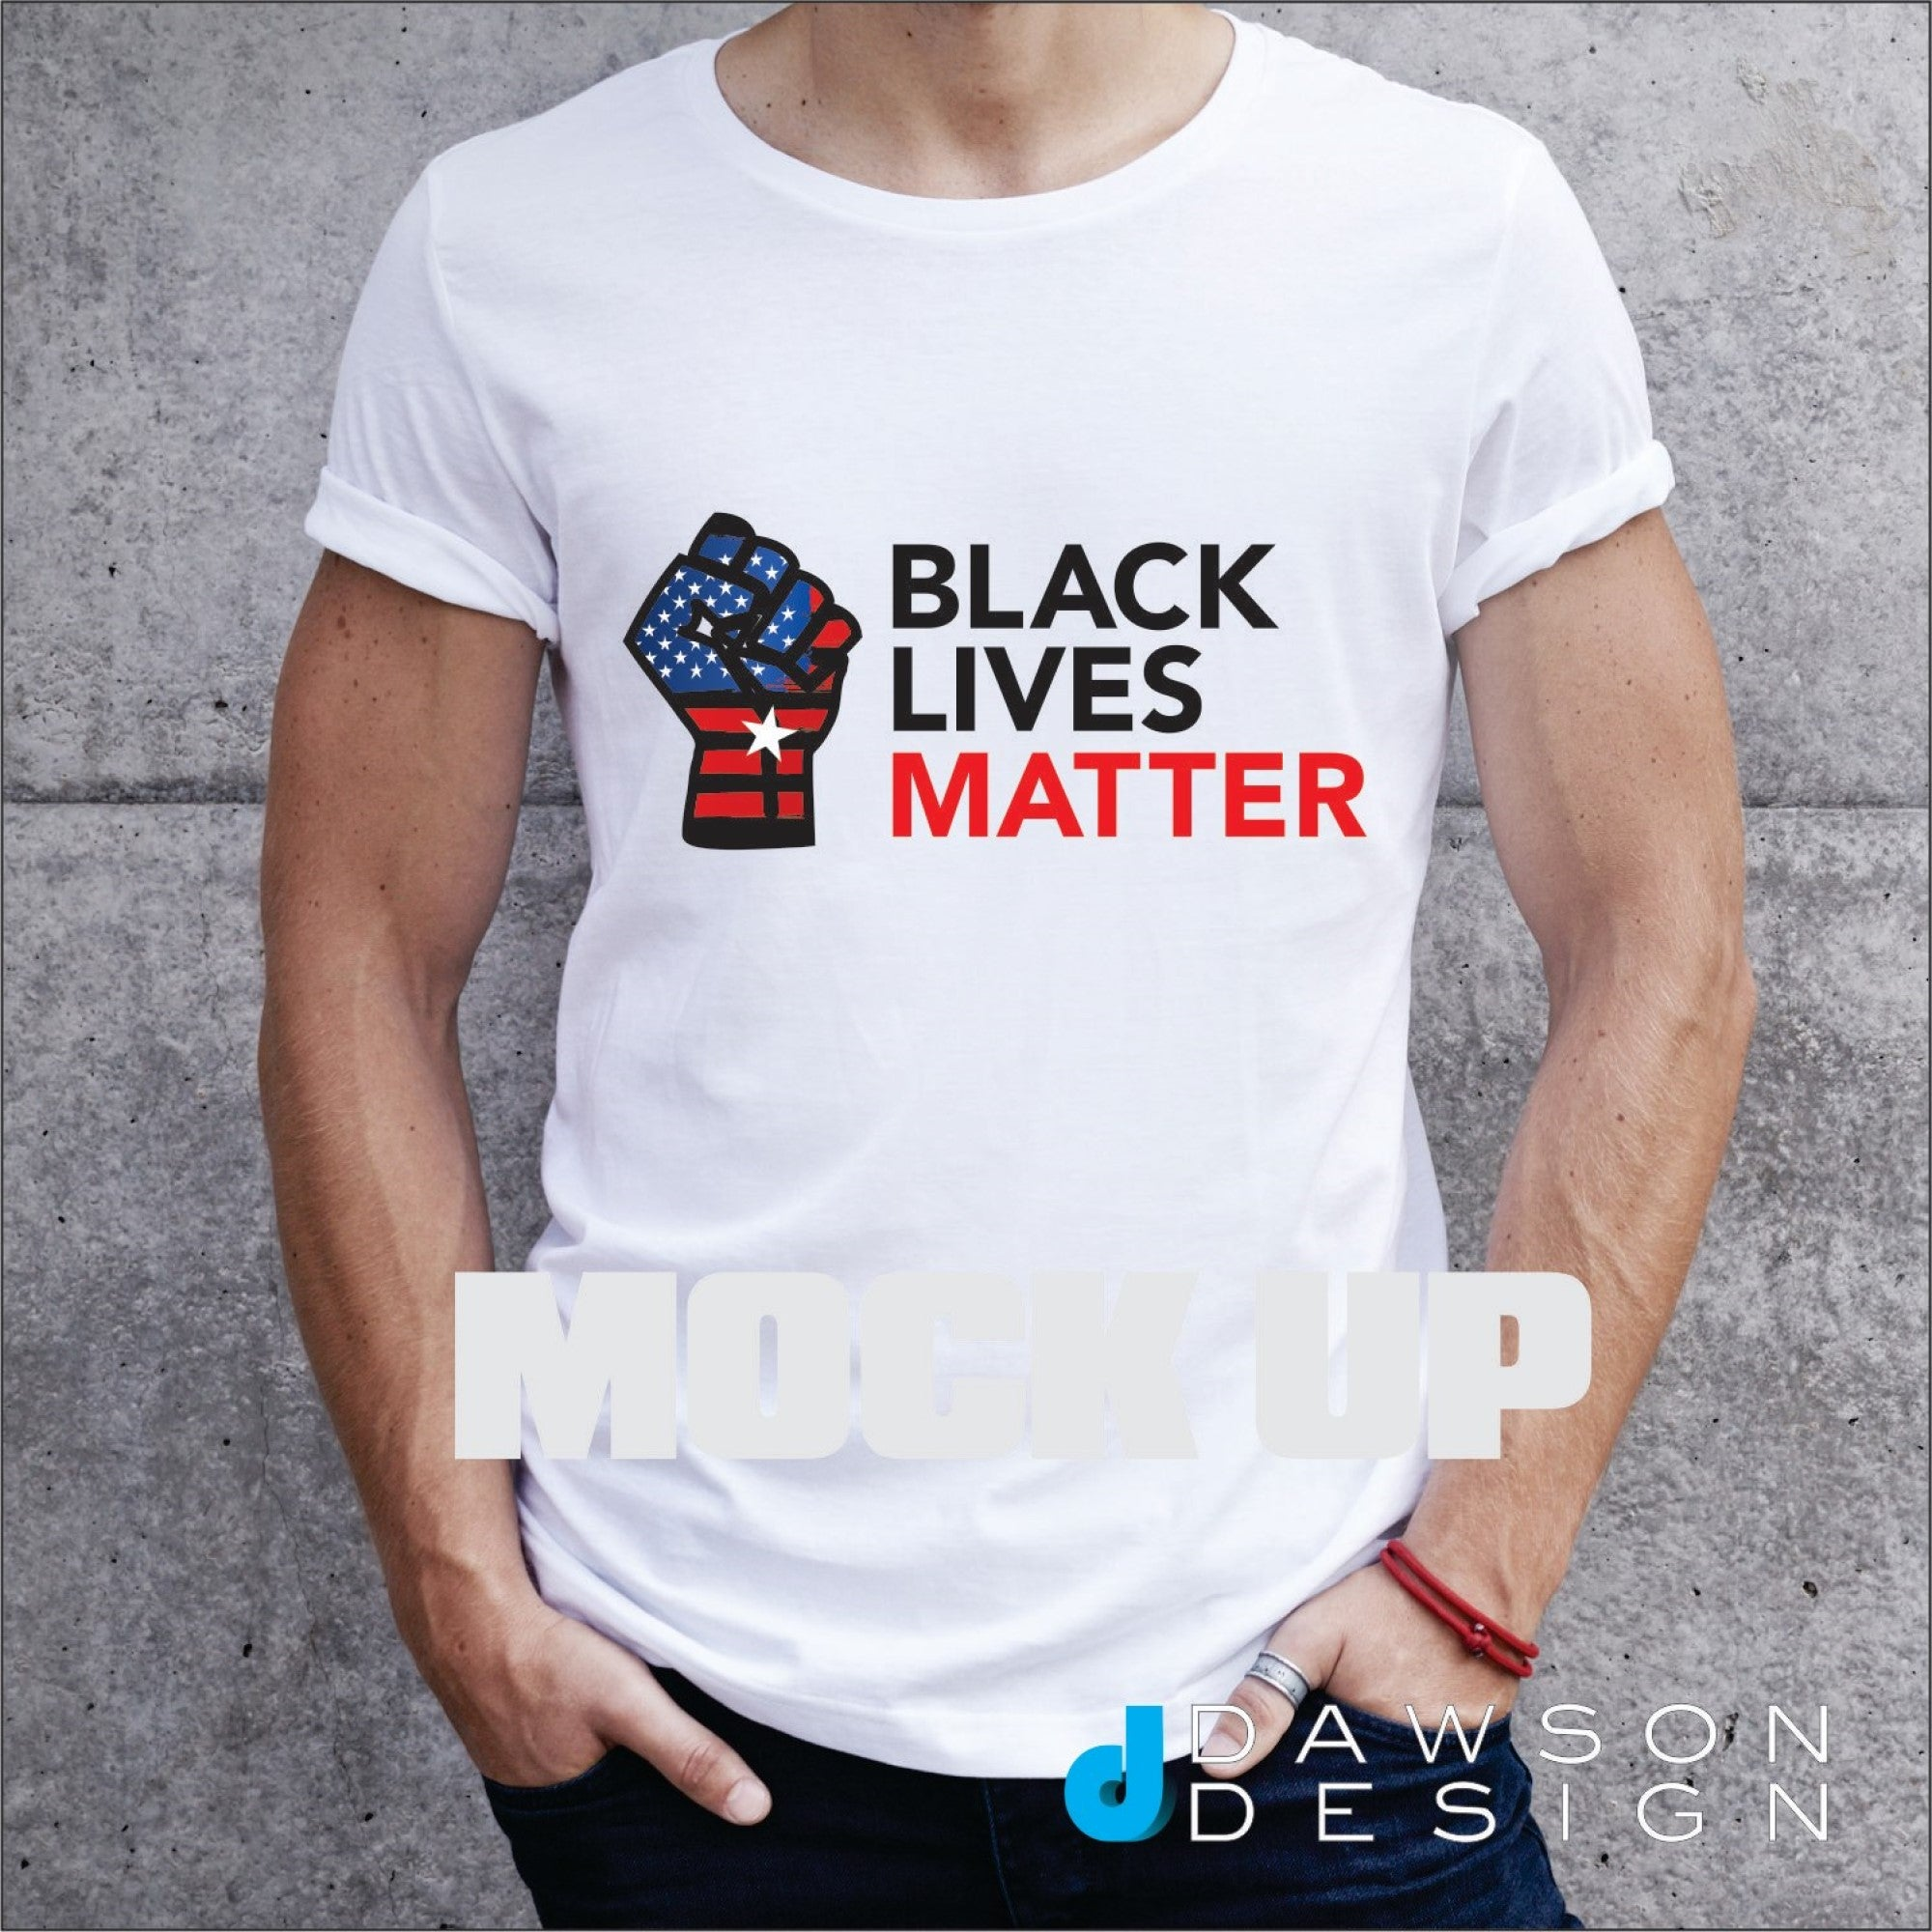 Free Shipping - Black Lives Matter T-Shirt - BUY 3 get 1 FREE